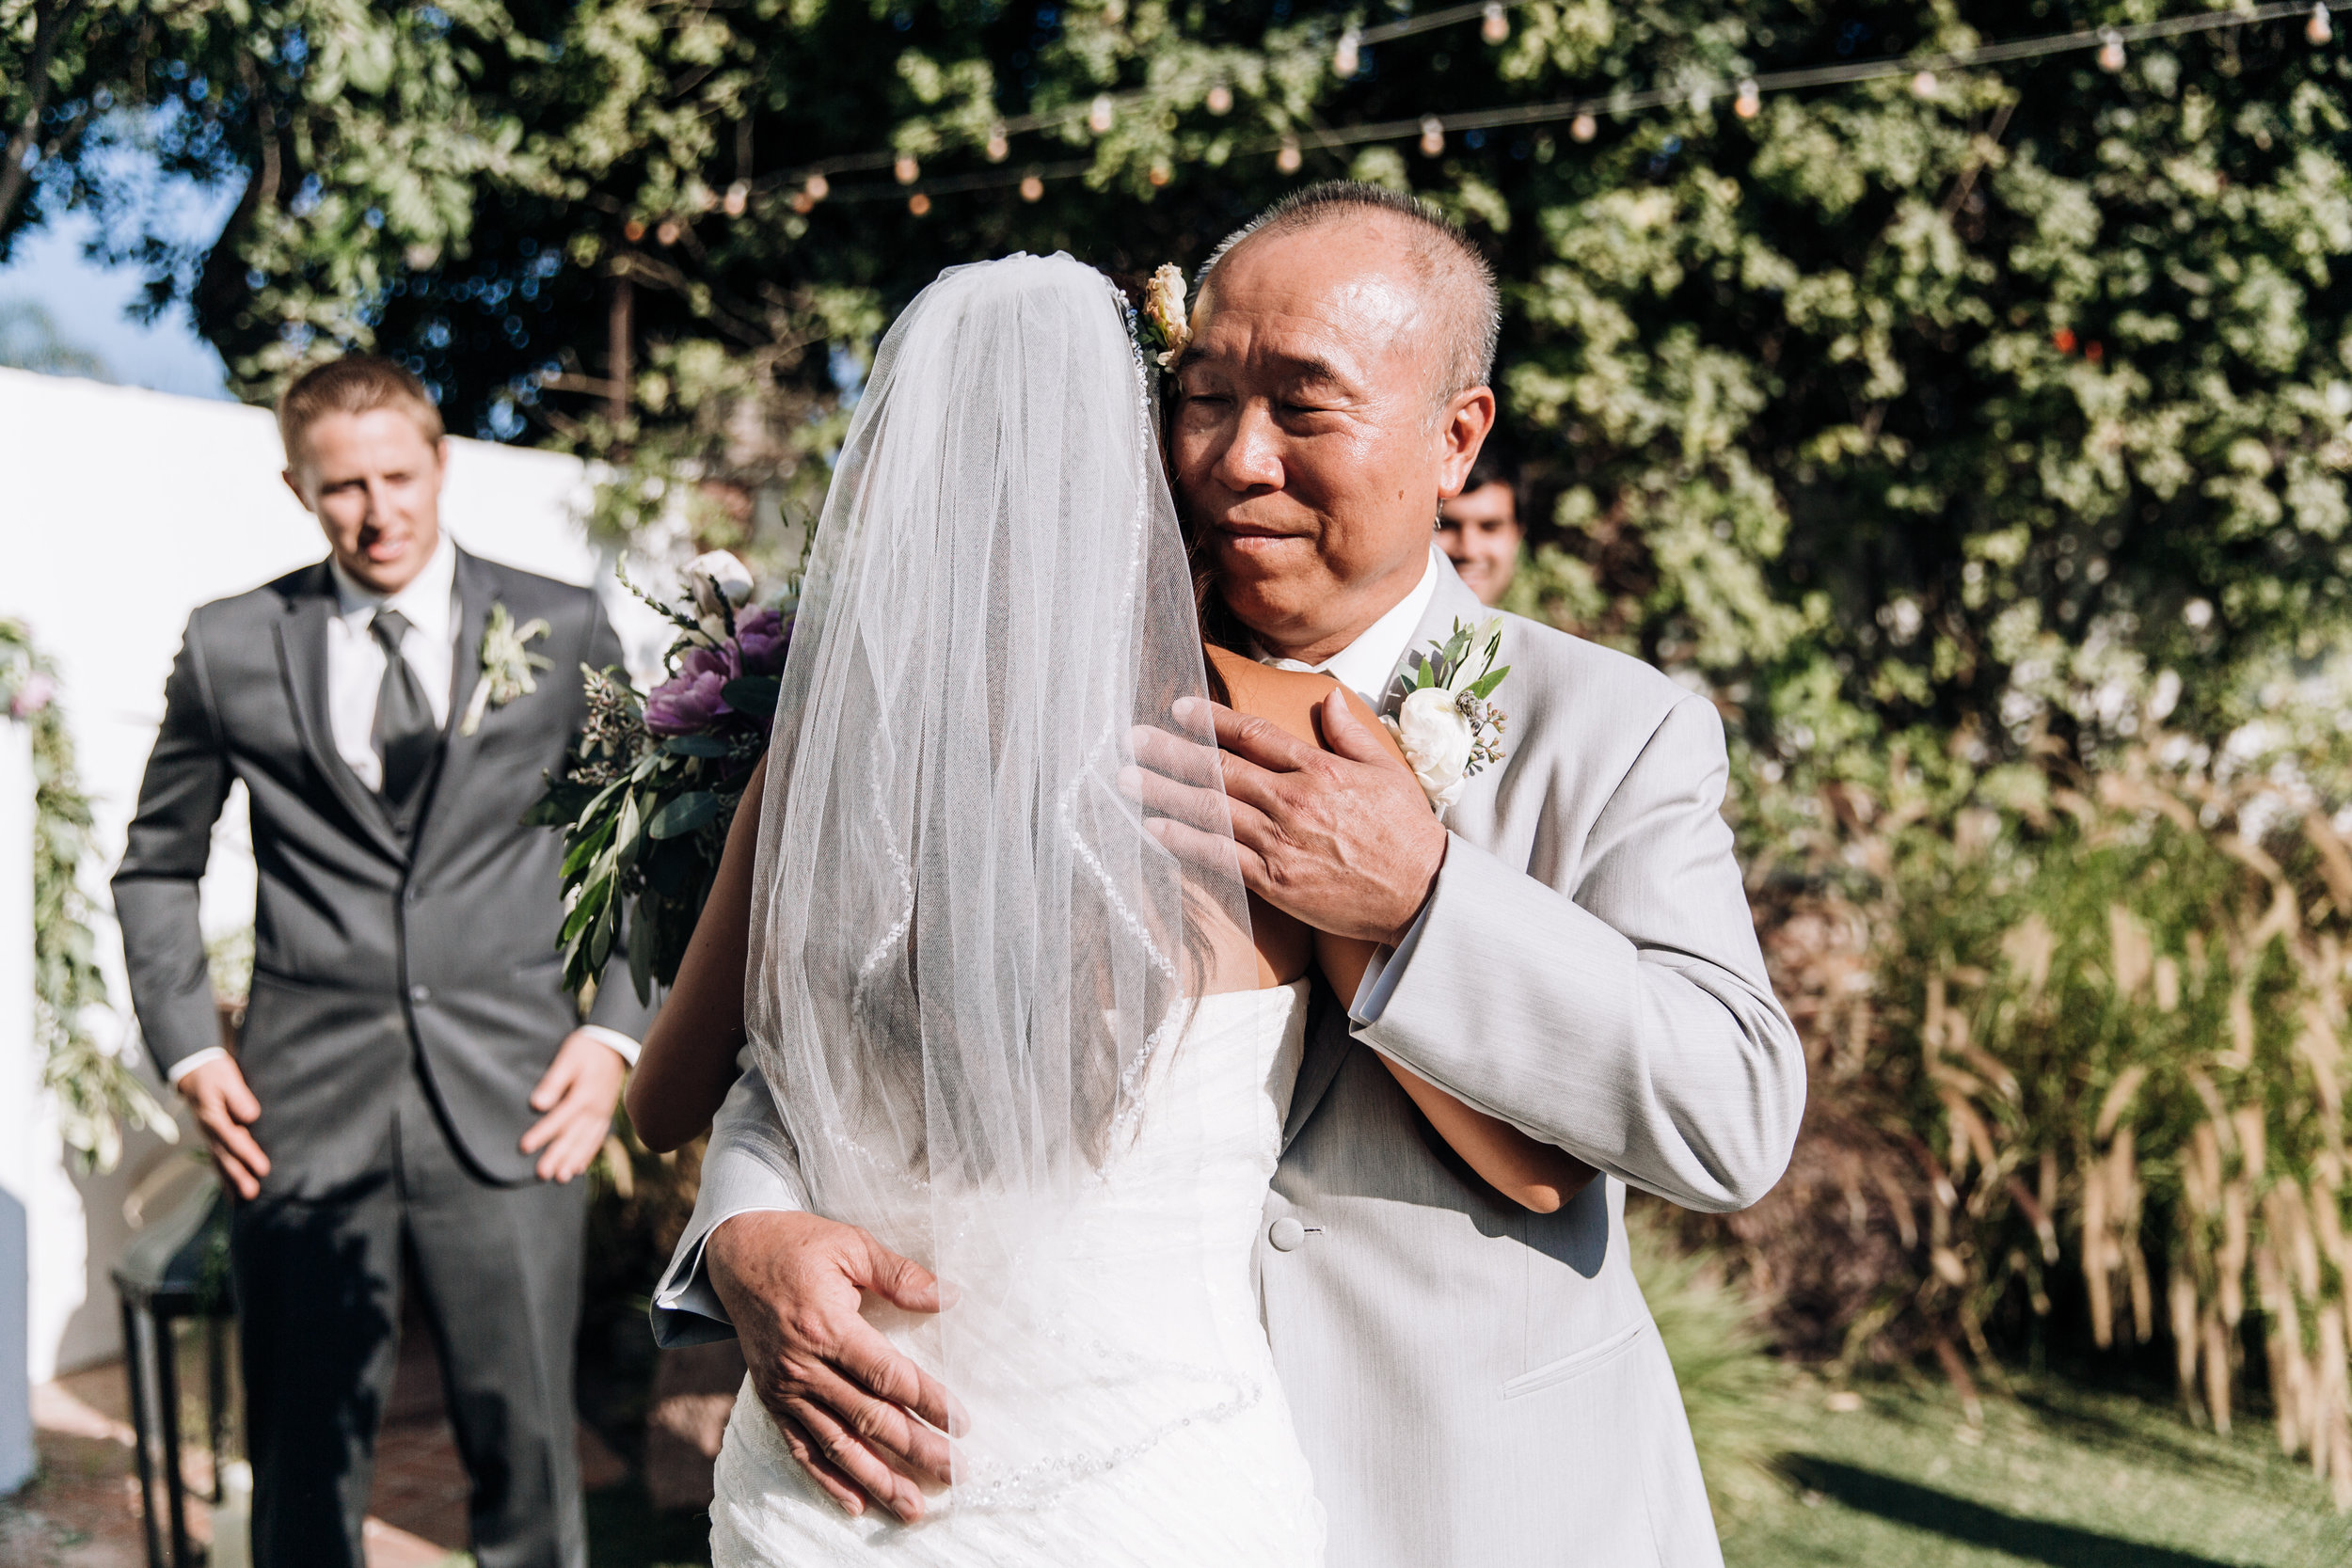 Orange County wedding photographer, southern california wedding photographer, san clemente wedding photographer, The Casino San Clemente, OC wedding photographer, SoCal wedding photographer